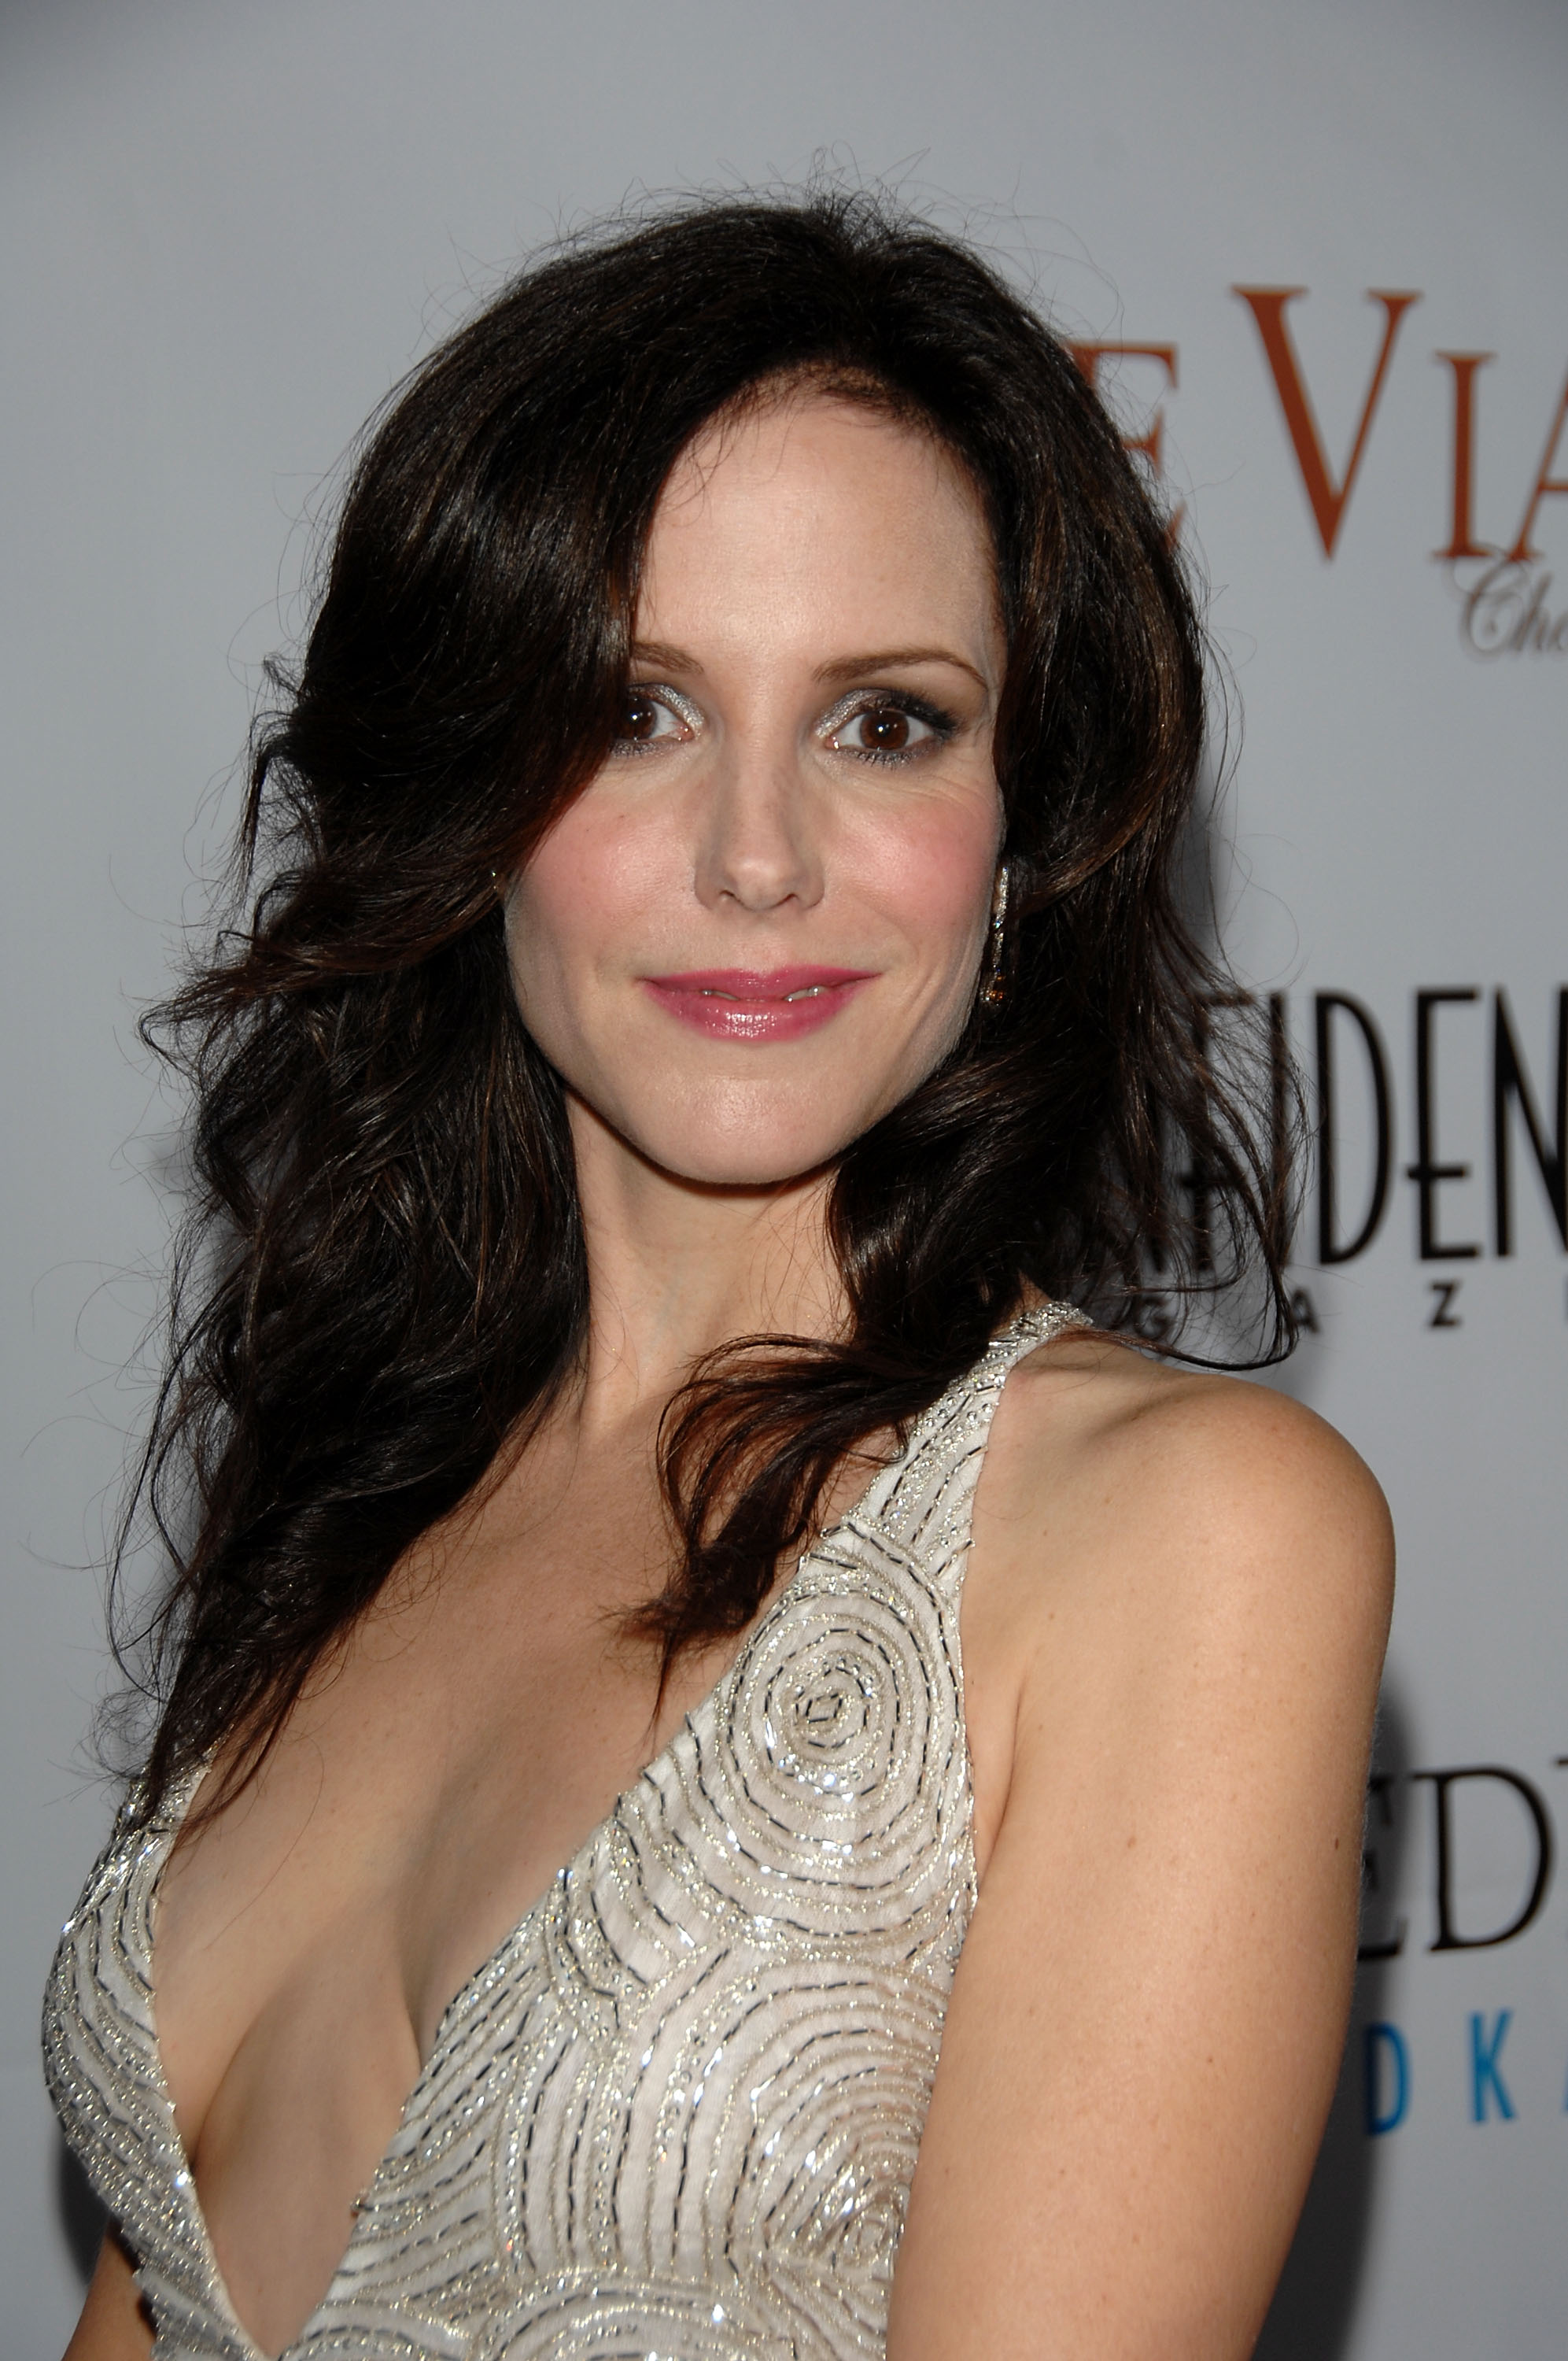 91517_Celebutopia-Mary-Louise_Parker-Los_Angeles_Confidential_Magazine3s_Pre-Emmy_Party-03_122_755lo.jpg